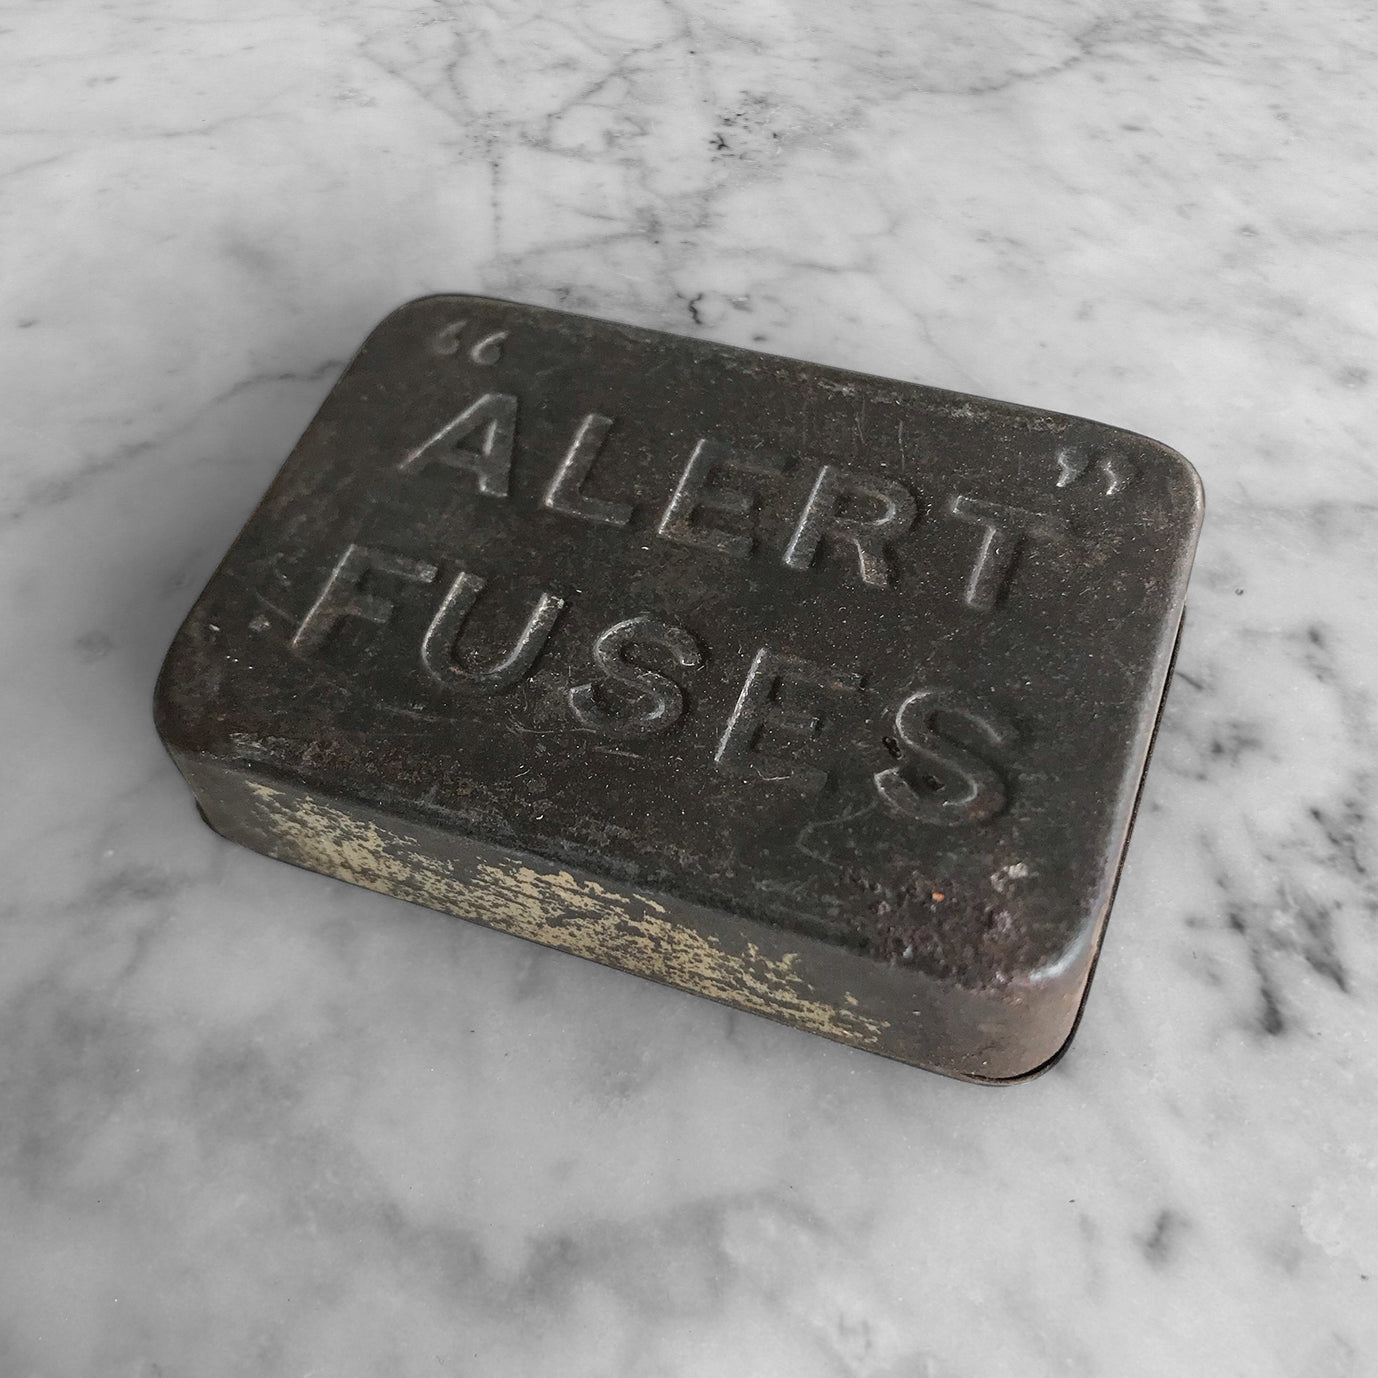 Nice little Alert Fuse Tin - SHOP NOW - www.intovintage.co.uk